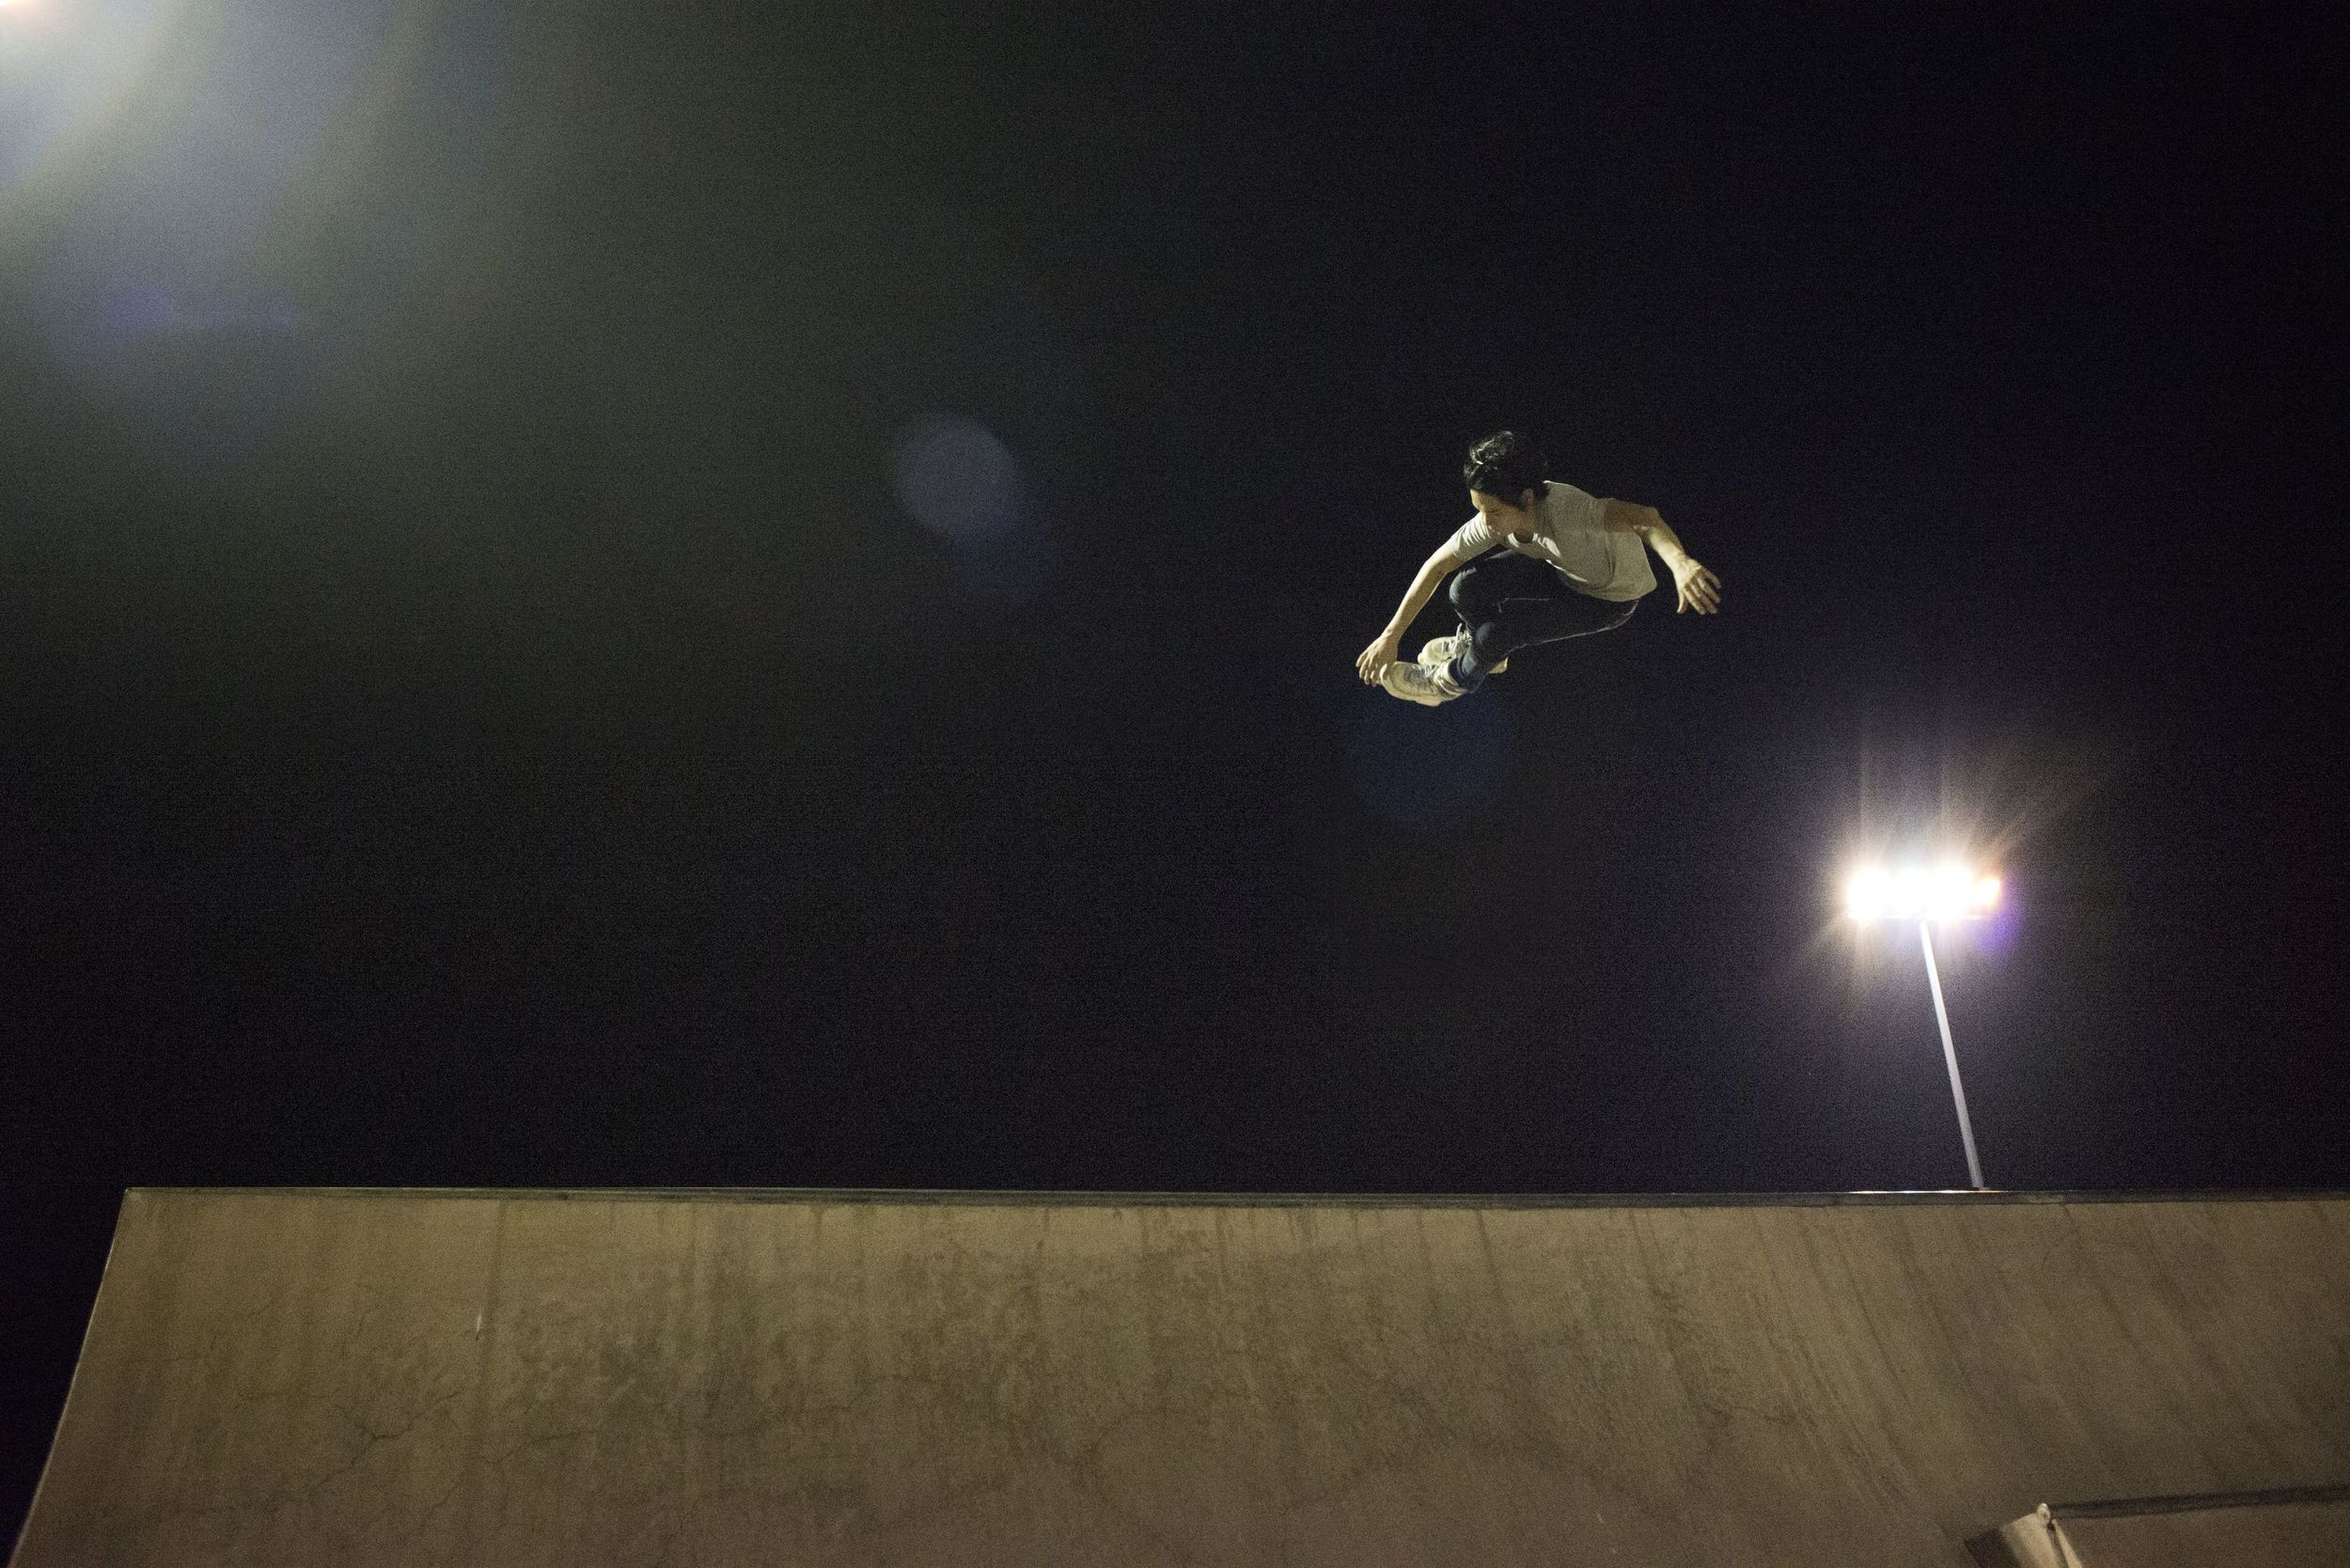 An inline skater executes a grab over the edge of the quarterpipe at the East Coast Skate Park.